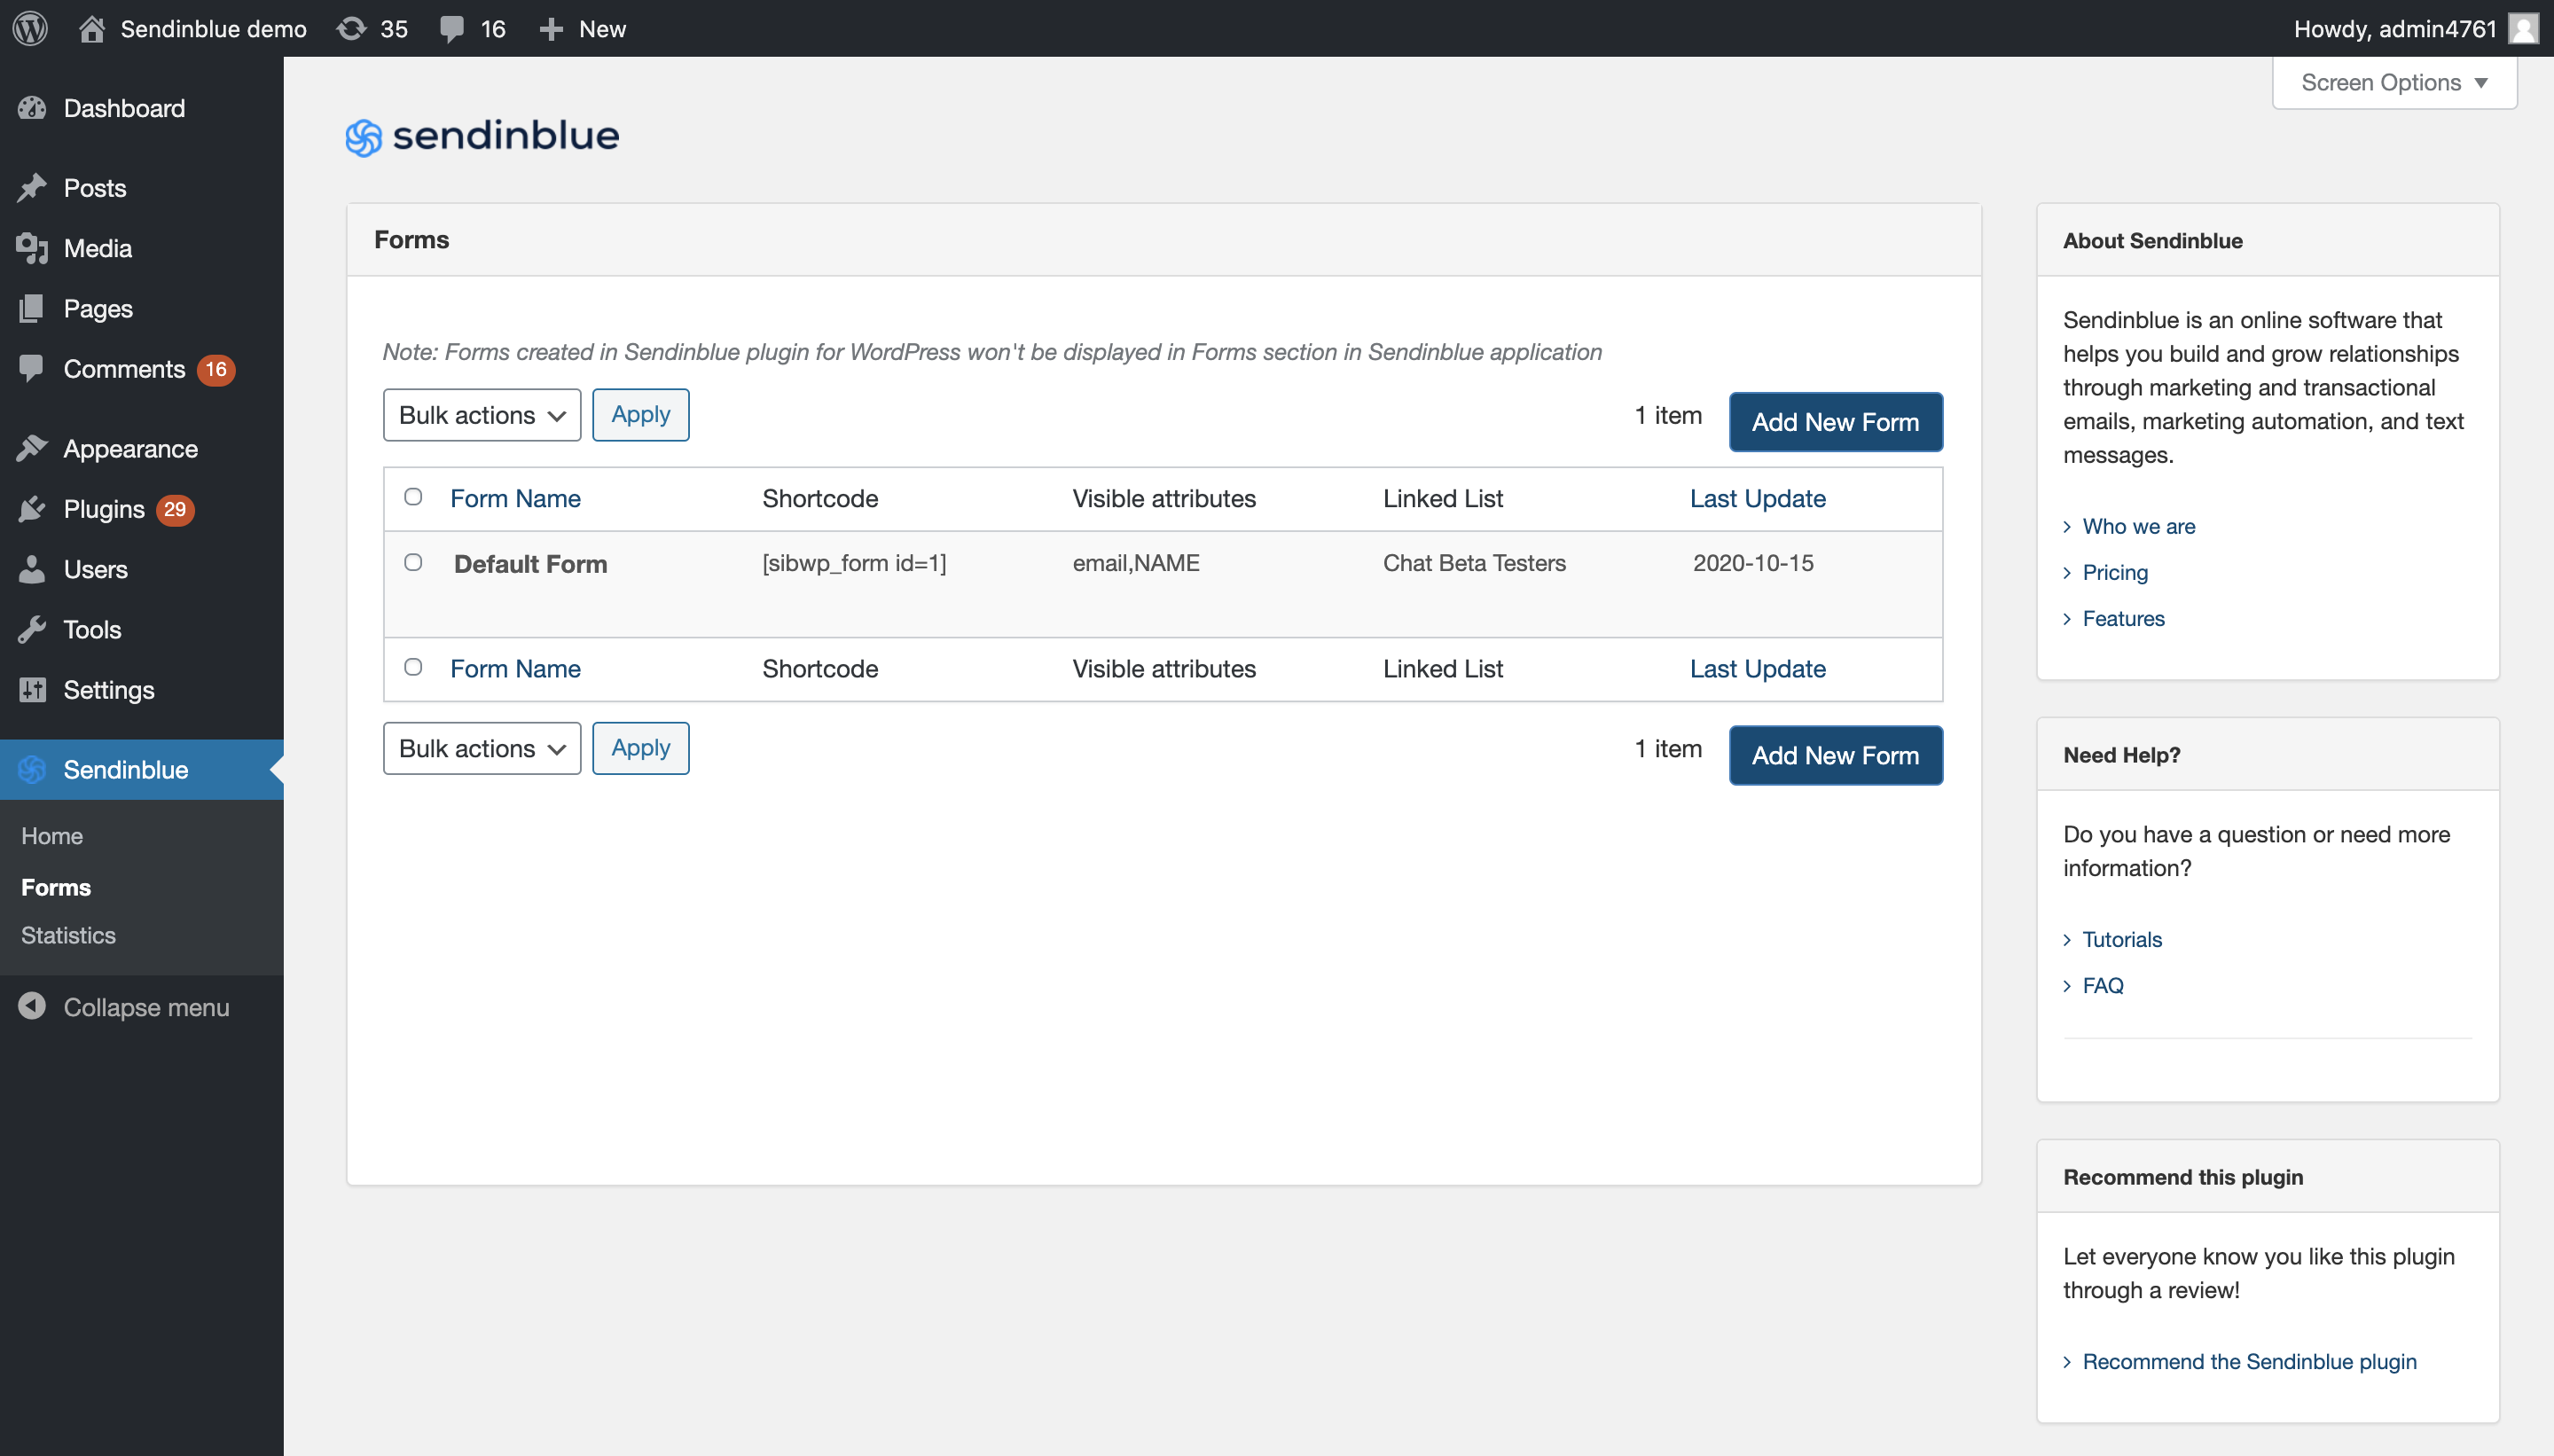 The Forms page gives you access to your forms list